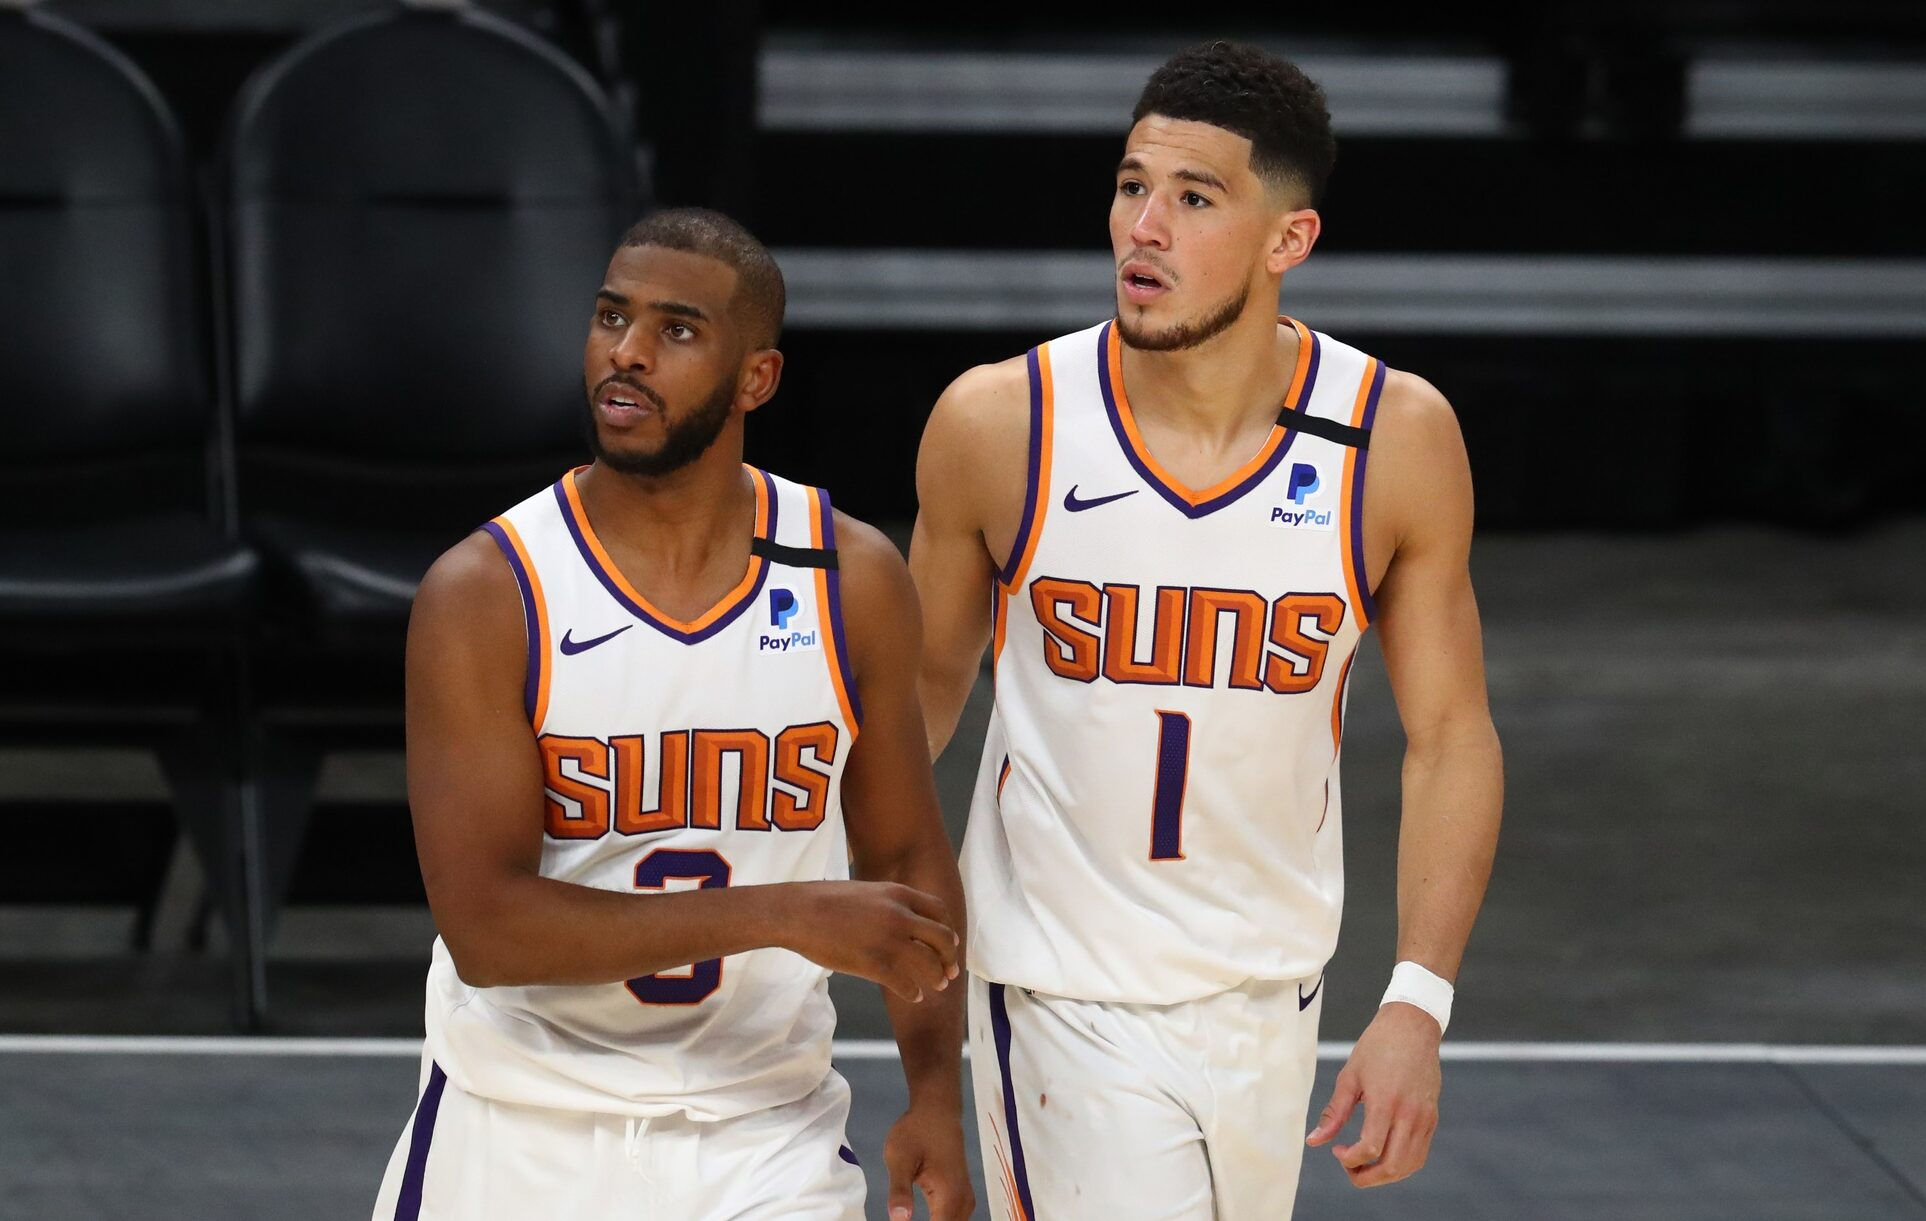 Power Rankings, Week 17: Suns rise to No. 1 as regular season enters crucial stretch